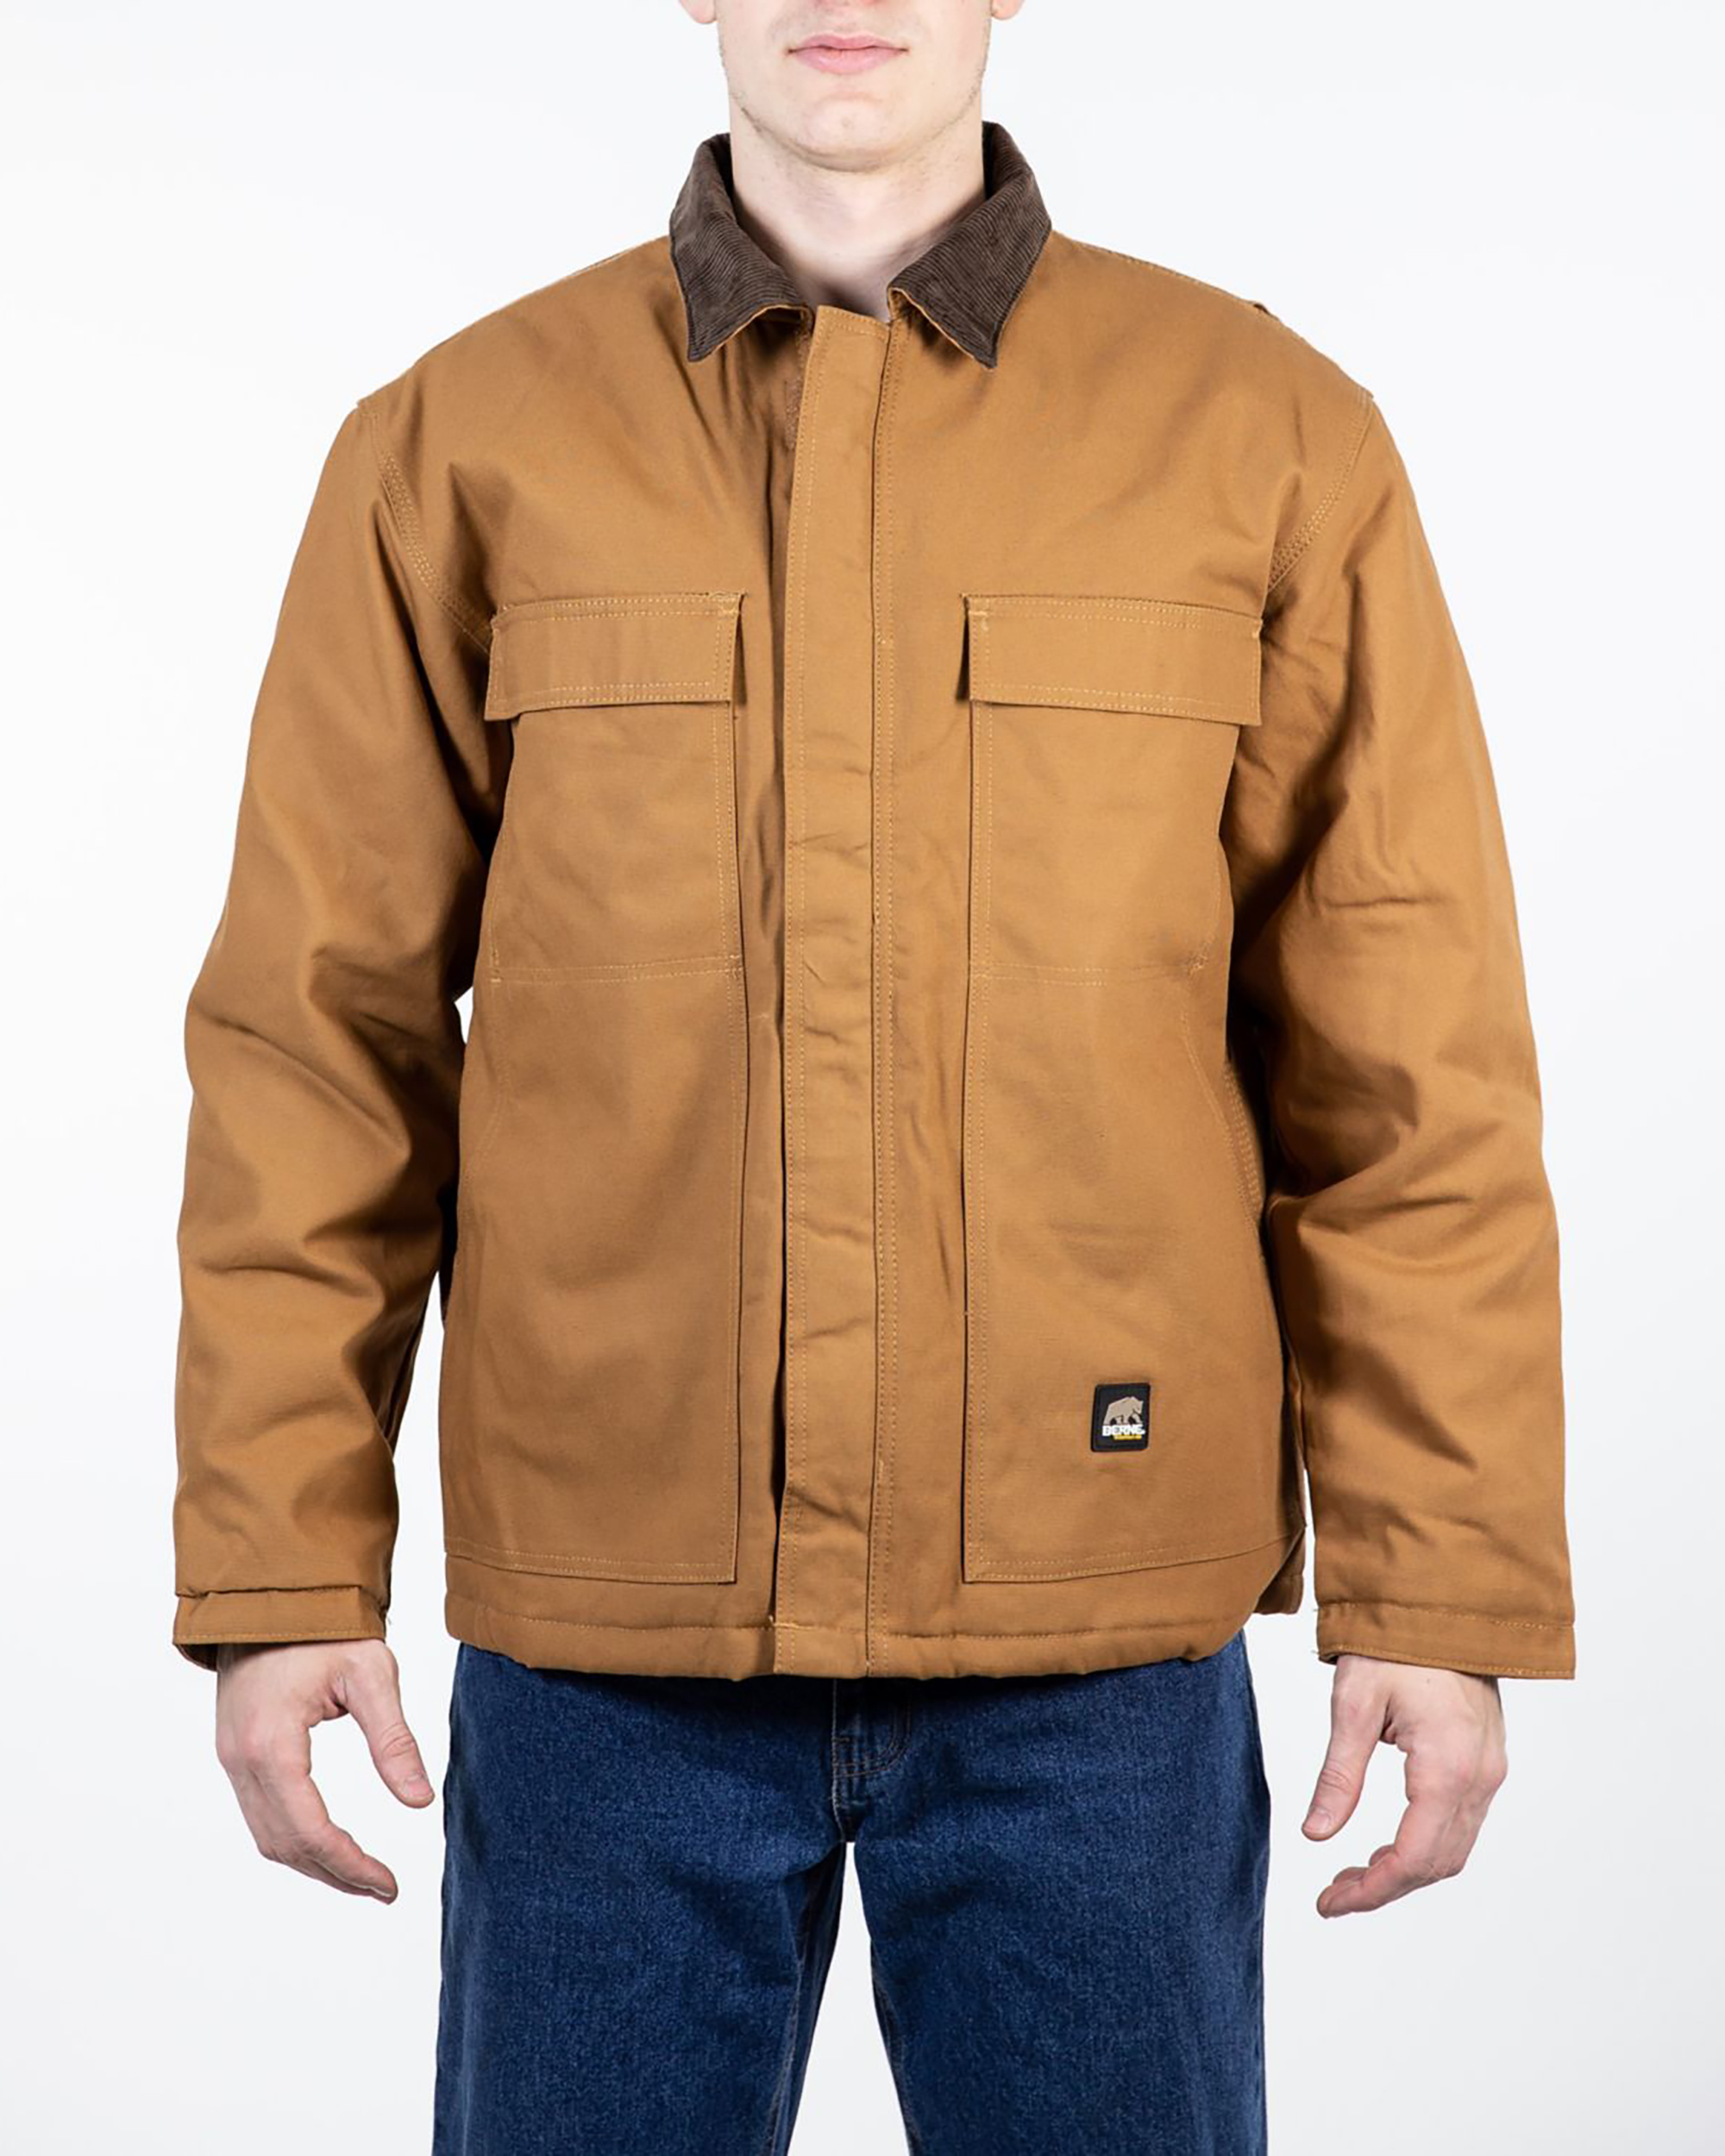 Berne Workwear CH416 - Heritage Chore Coat